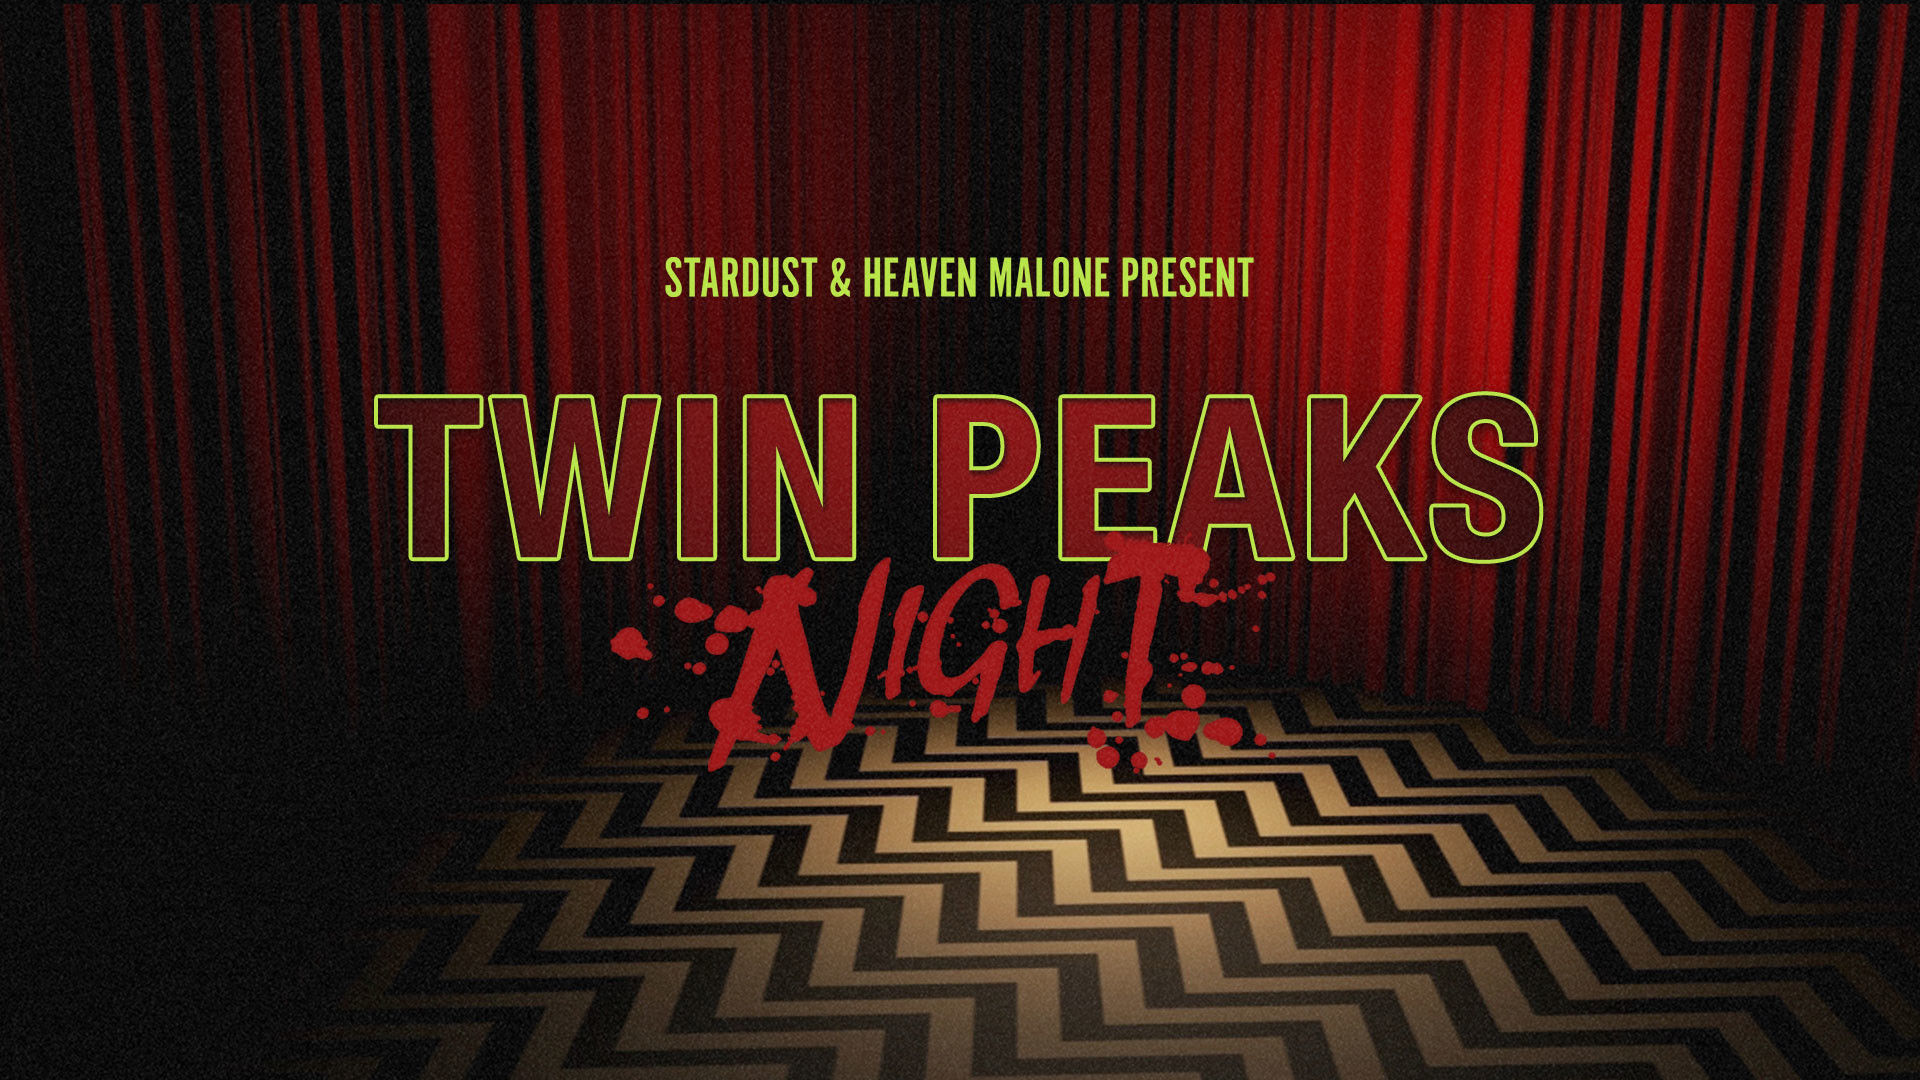 Twin Peaks Night – Drag & Burlesque Dance Party – June 1, 2017 at Berlin  Nightclub, Chicago – DJ sets by Heaven Malone